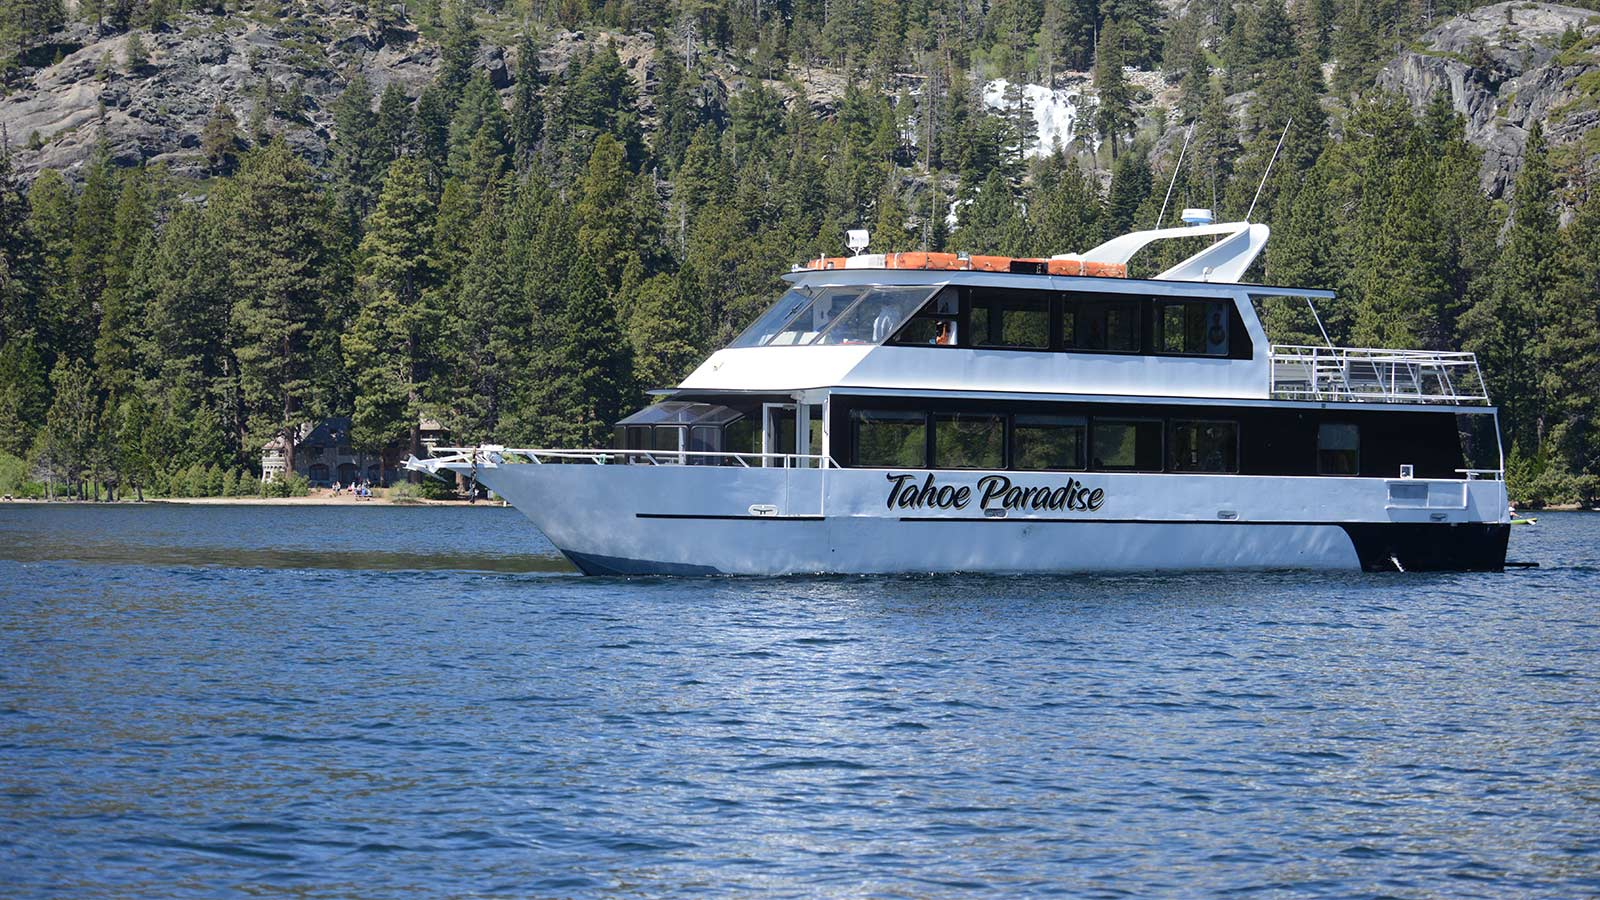 Private Charter Cruise | South Lake Tahoe | Zephyr Cove